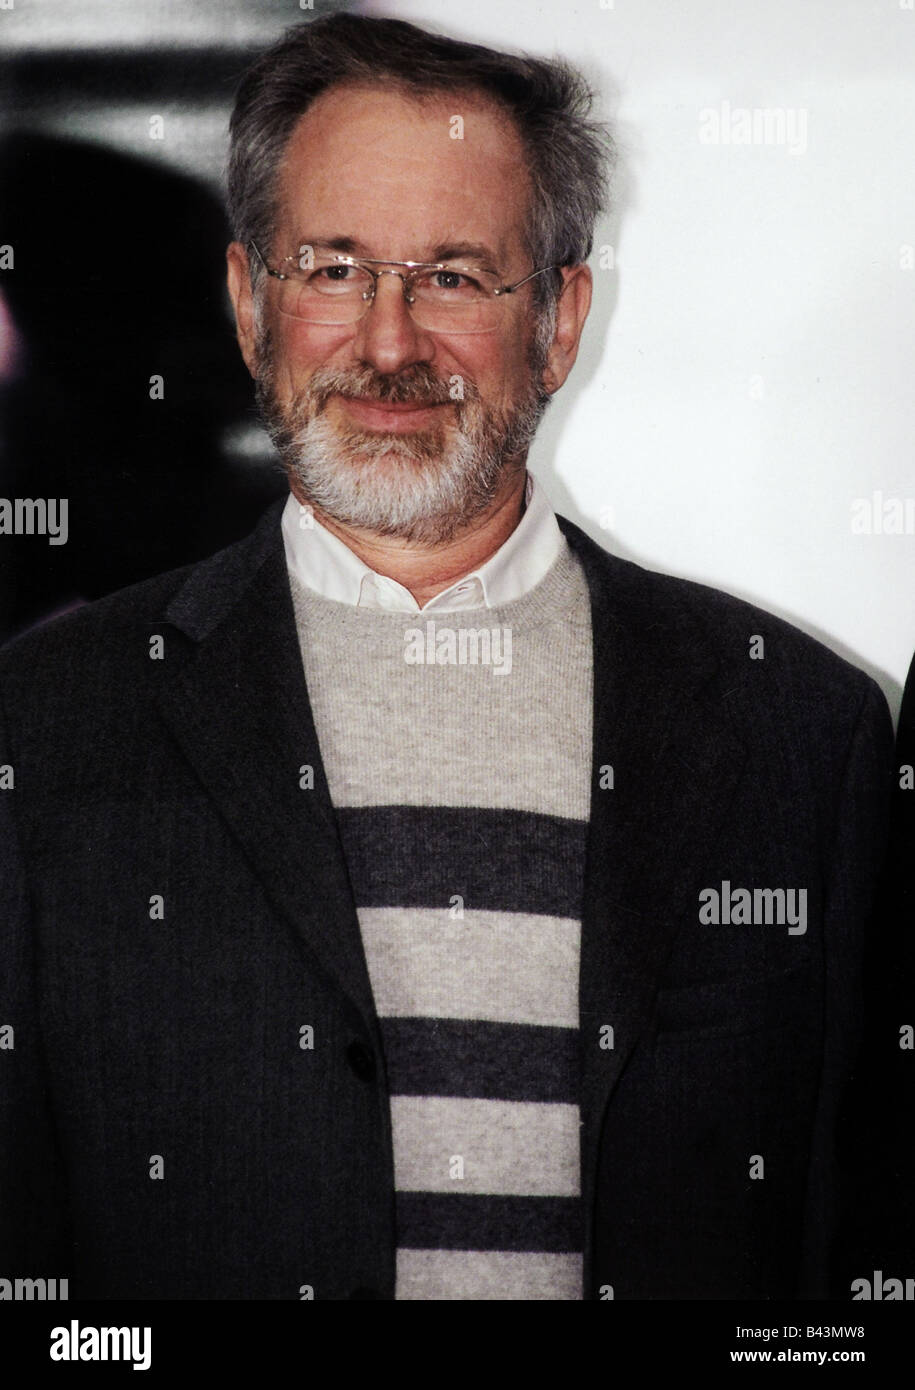 Spielberg, Steven, * 18.12.1946, American director and producer, portrait, premiere: 'Catch me if you can', - Stock Image